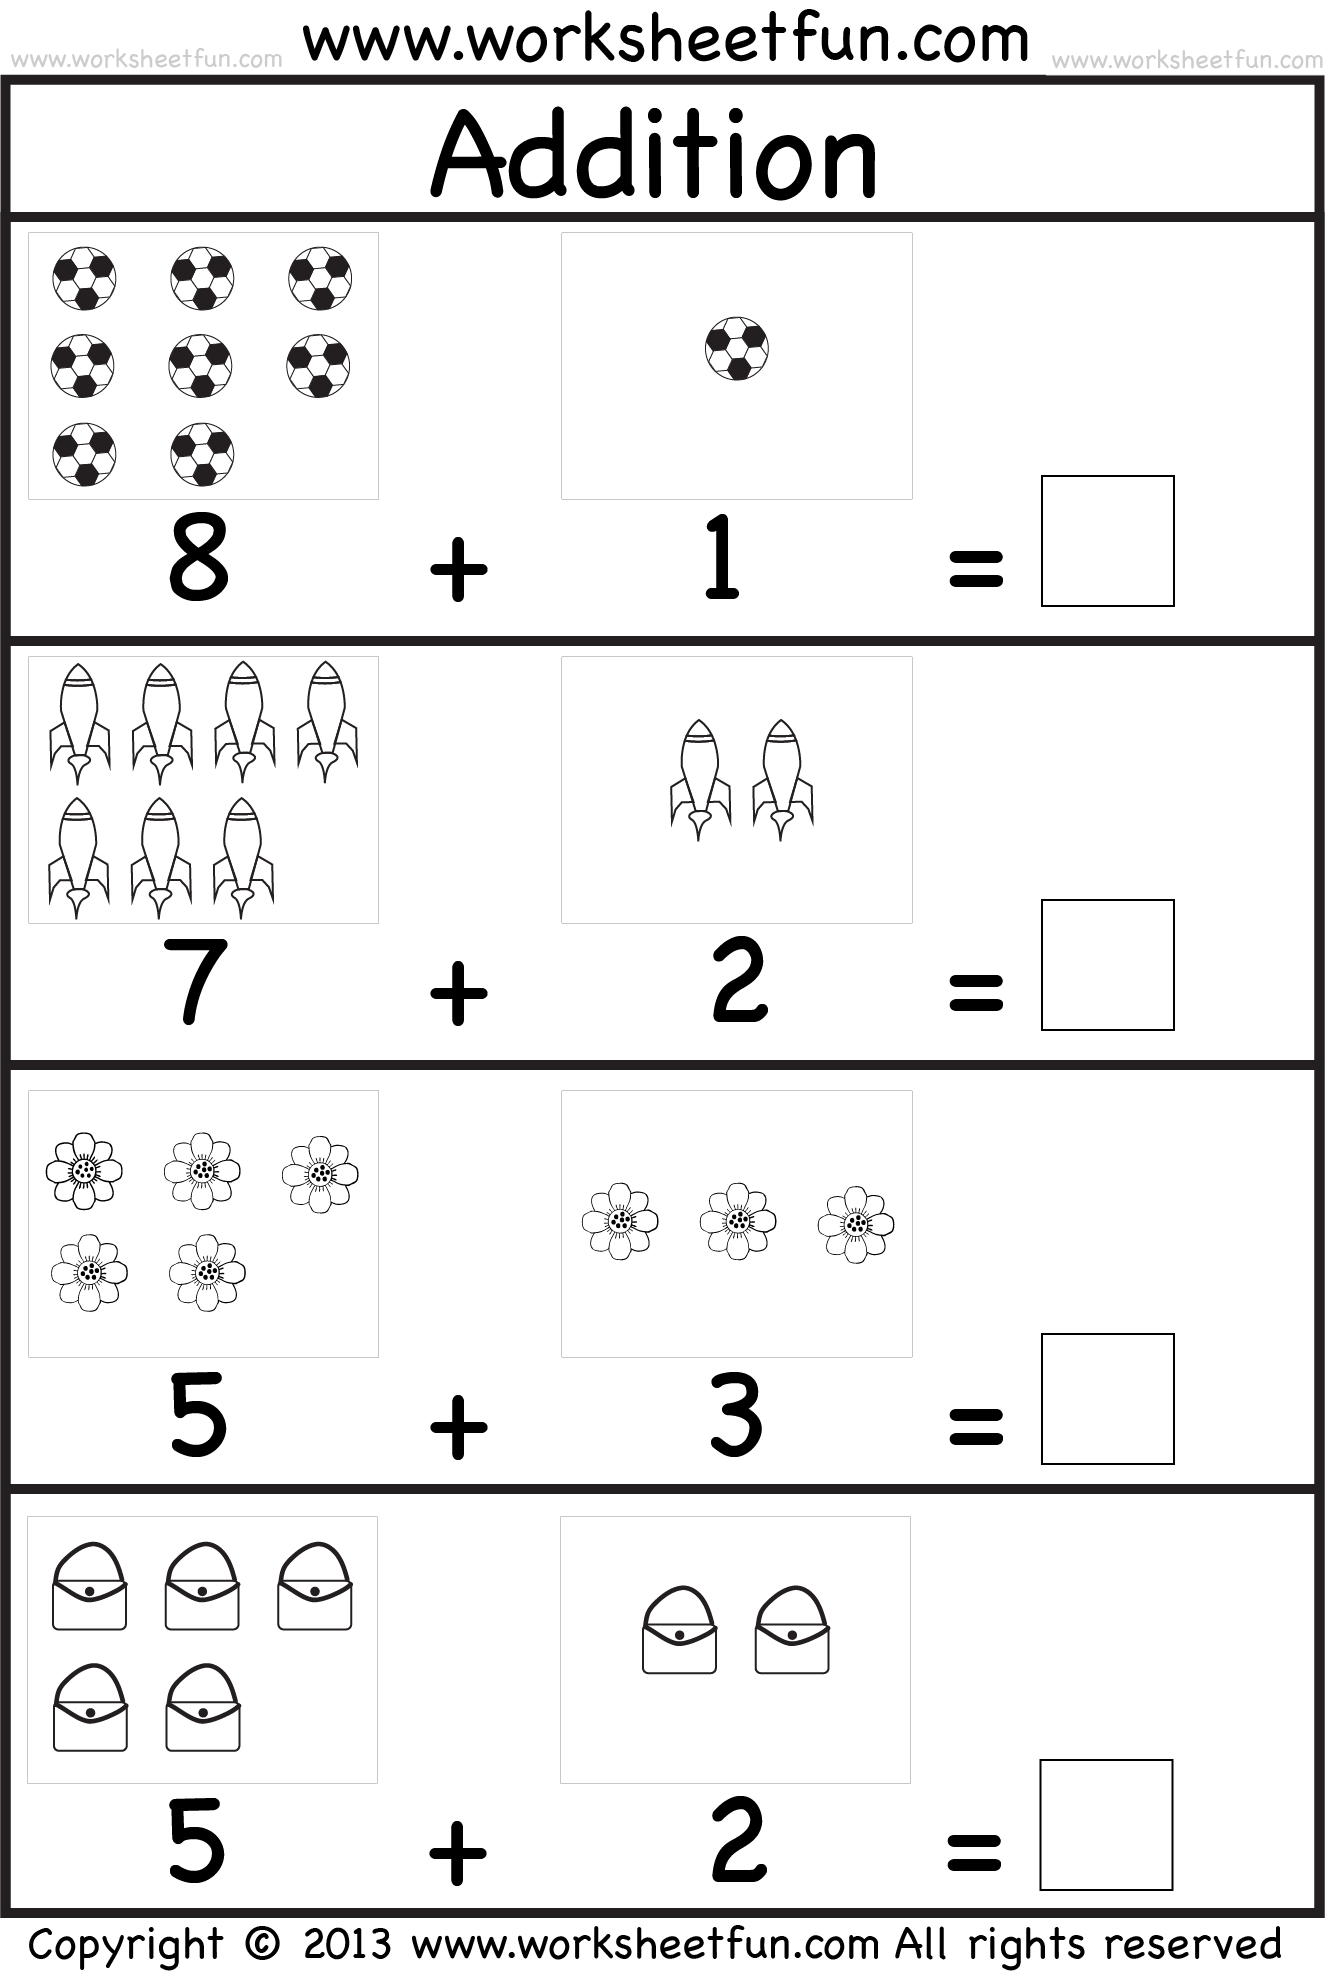 Addition Worksheet With Pictures